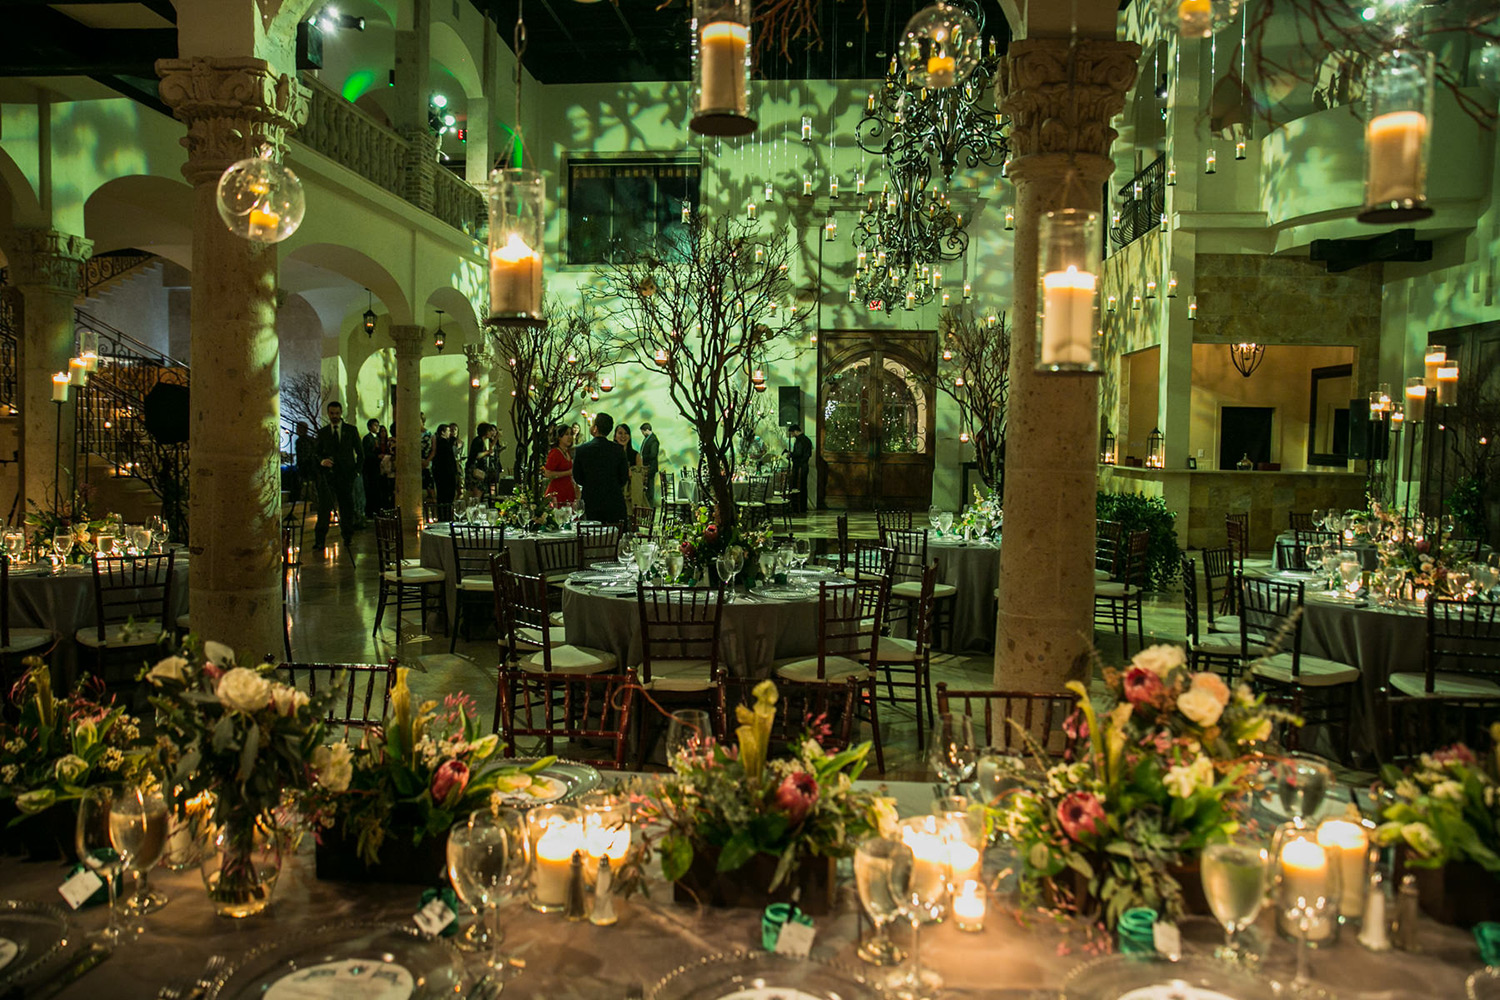 Hogwarts Comes To Life In Stunning Harry Potter Wedding